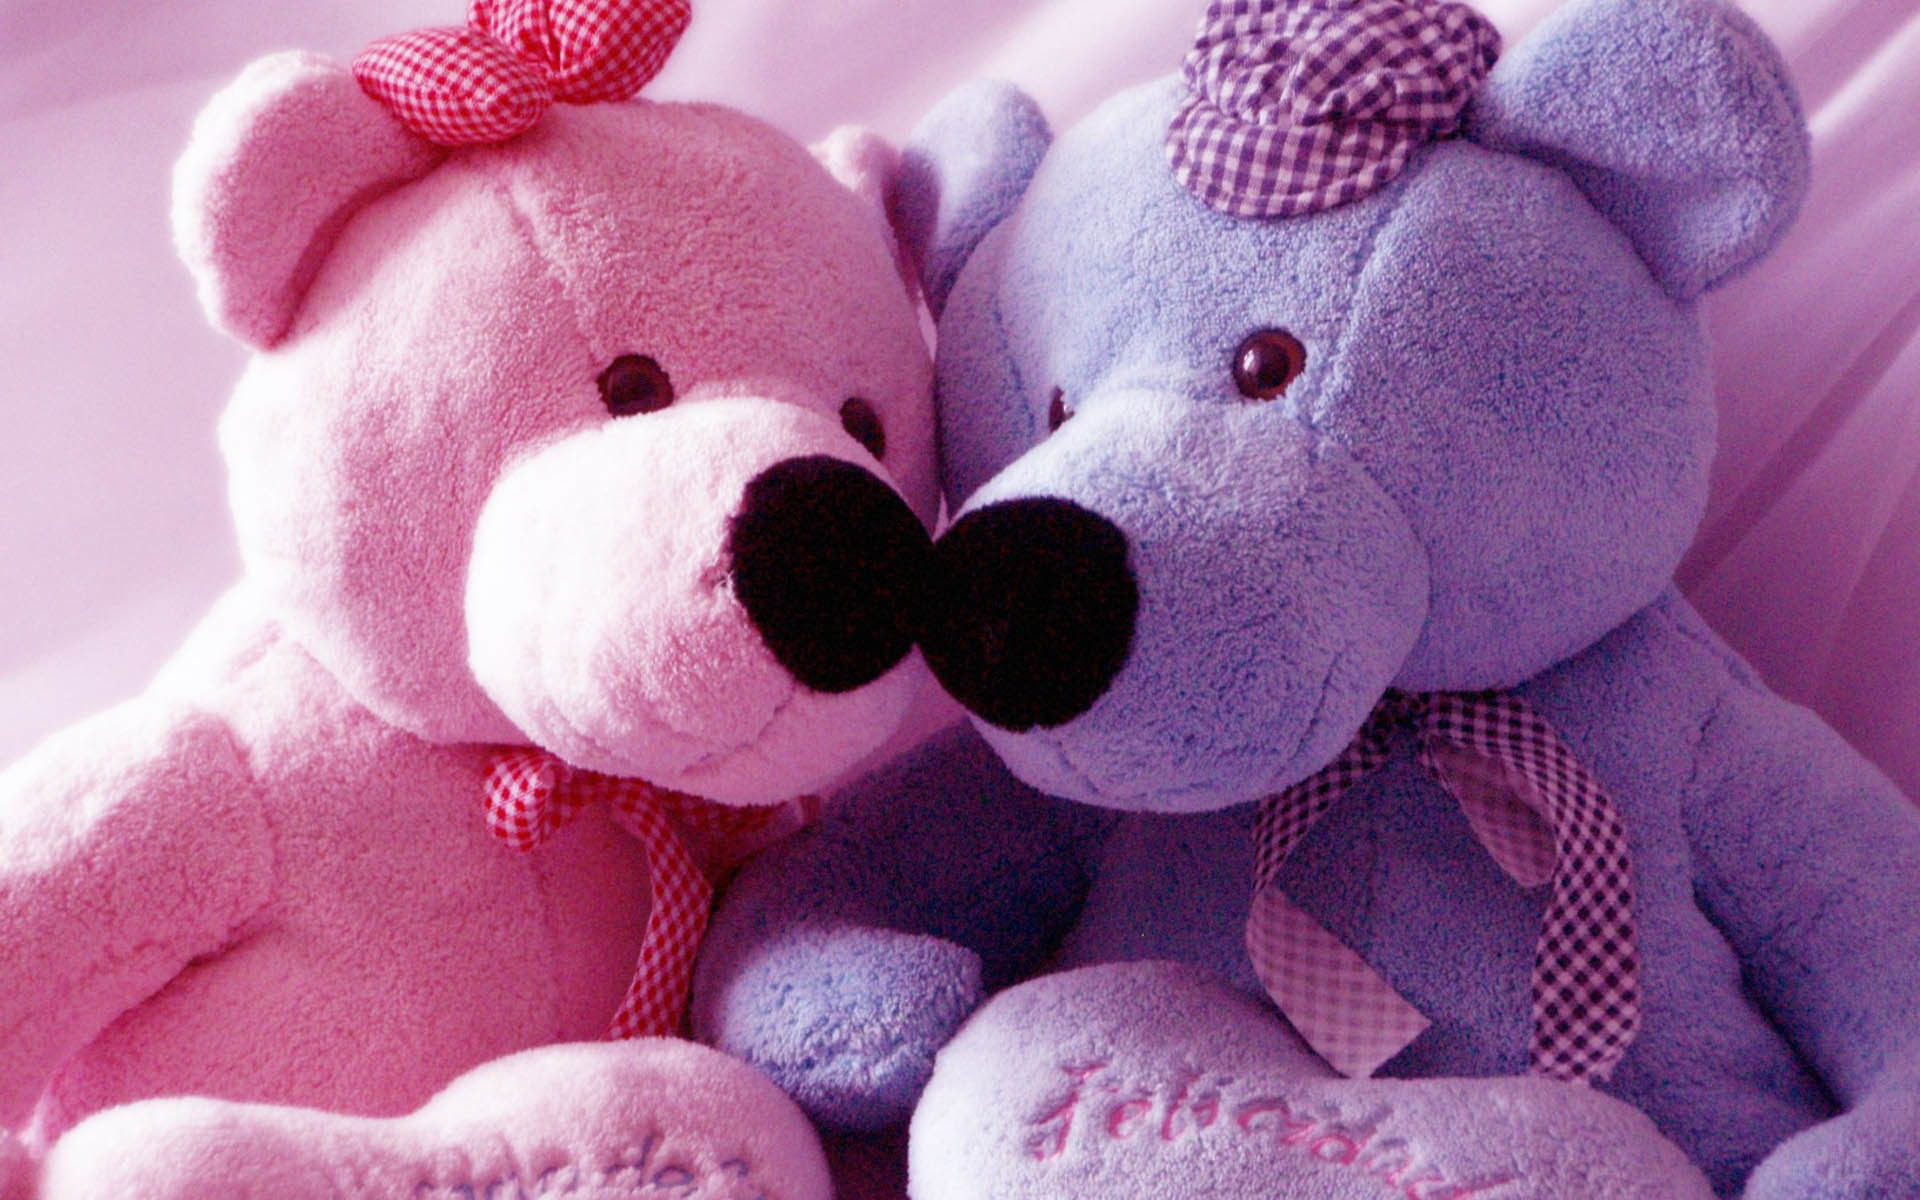 1920x1200 Pink And Blue Teddy Bear Wallpaper Computer 62 #7639 Wallpaper .